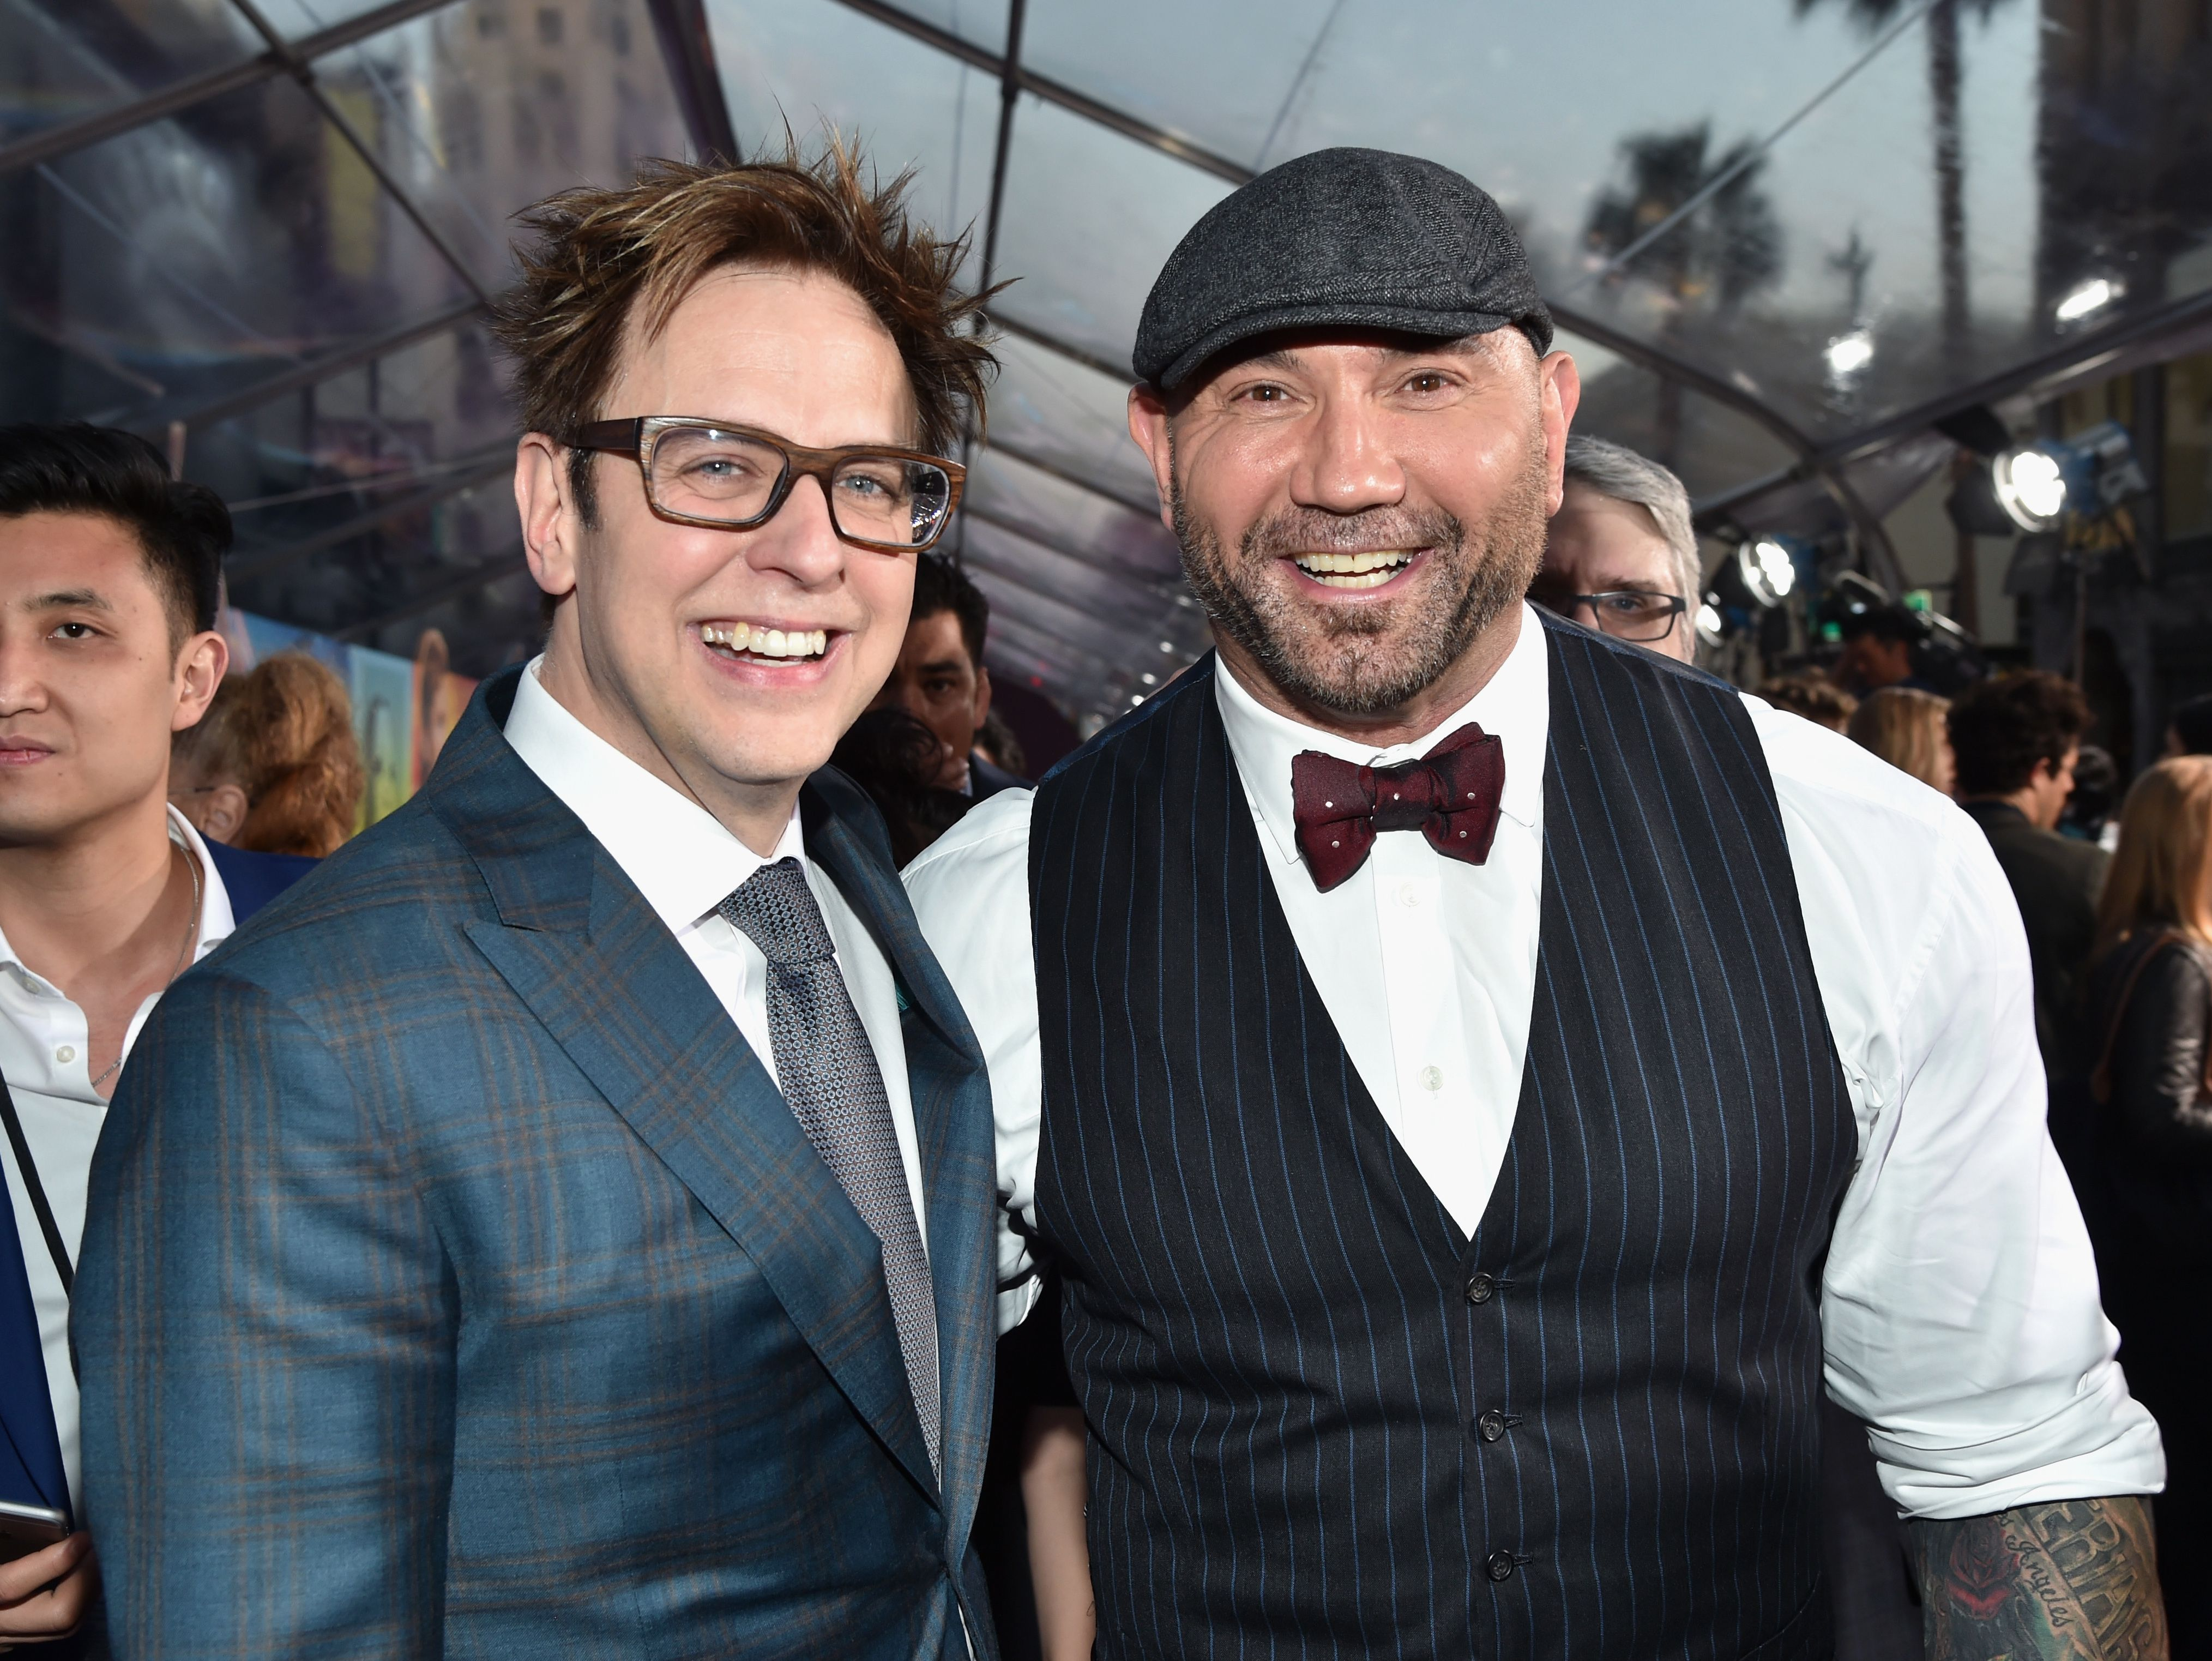 Guardians of the Galaxy Star Dave Bautista Put His Career On the Line to Defend James Gunn